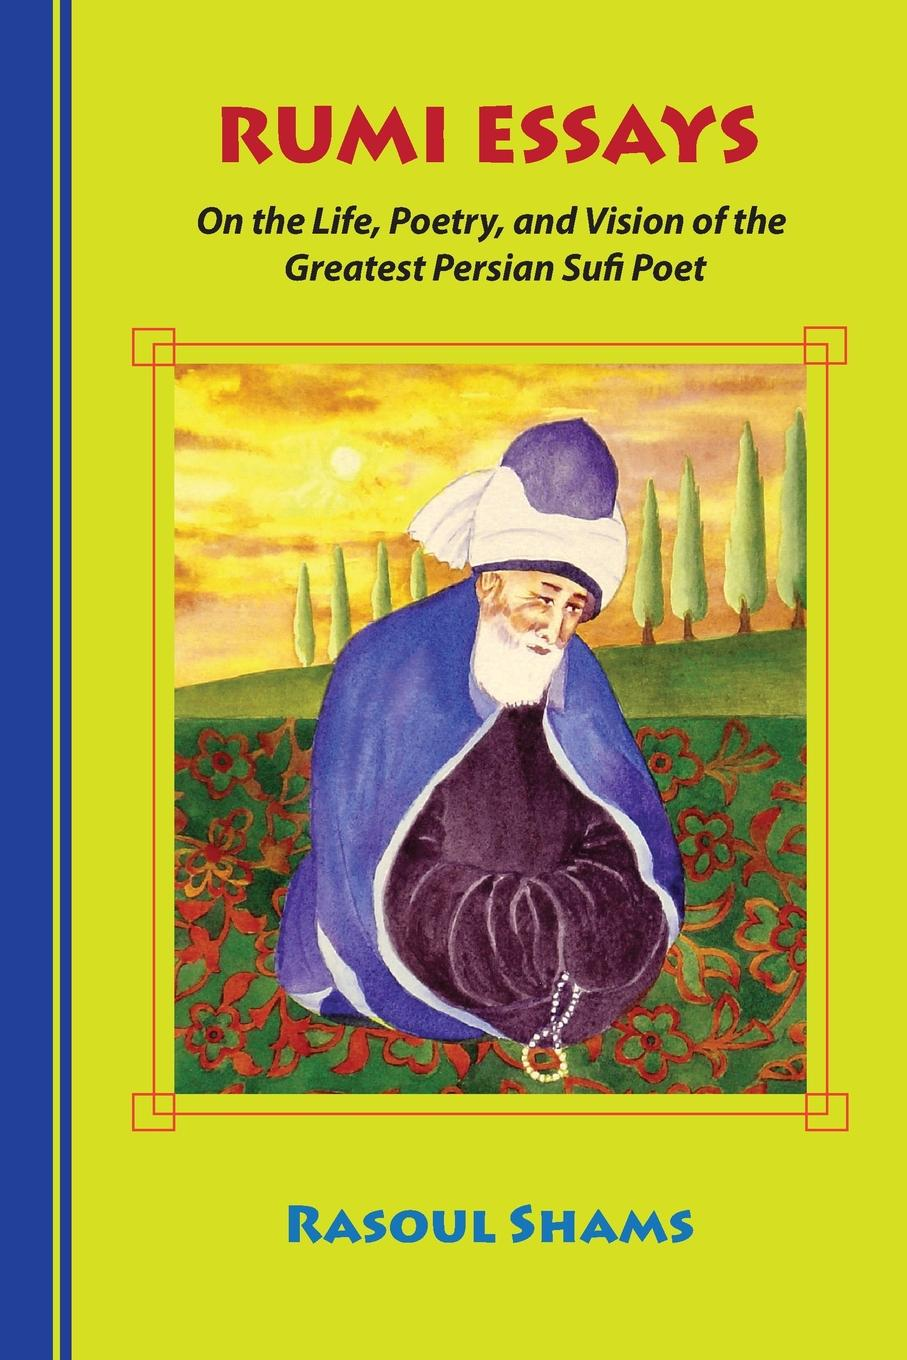 Rasoul Shams Rumi Essays. On the Life, Poetry, and Vision of the Greatest Persian Sufi Poet love poems of rumi